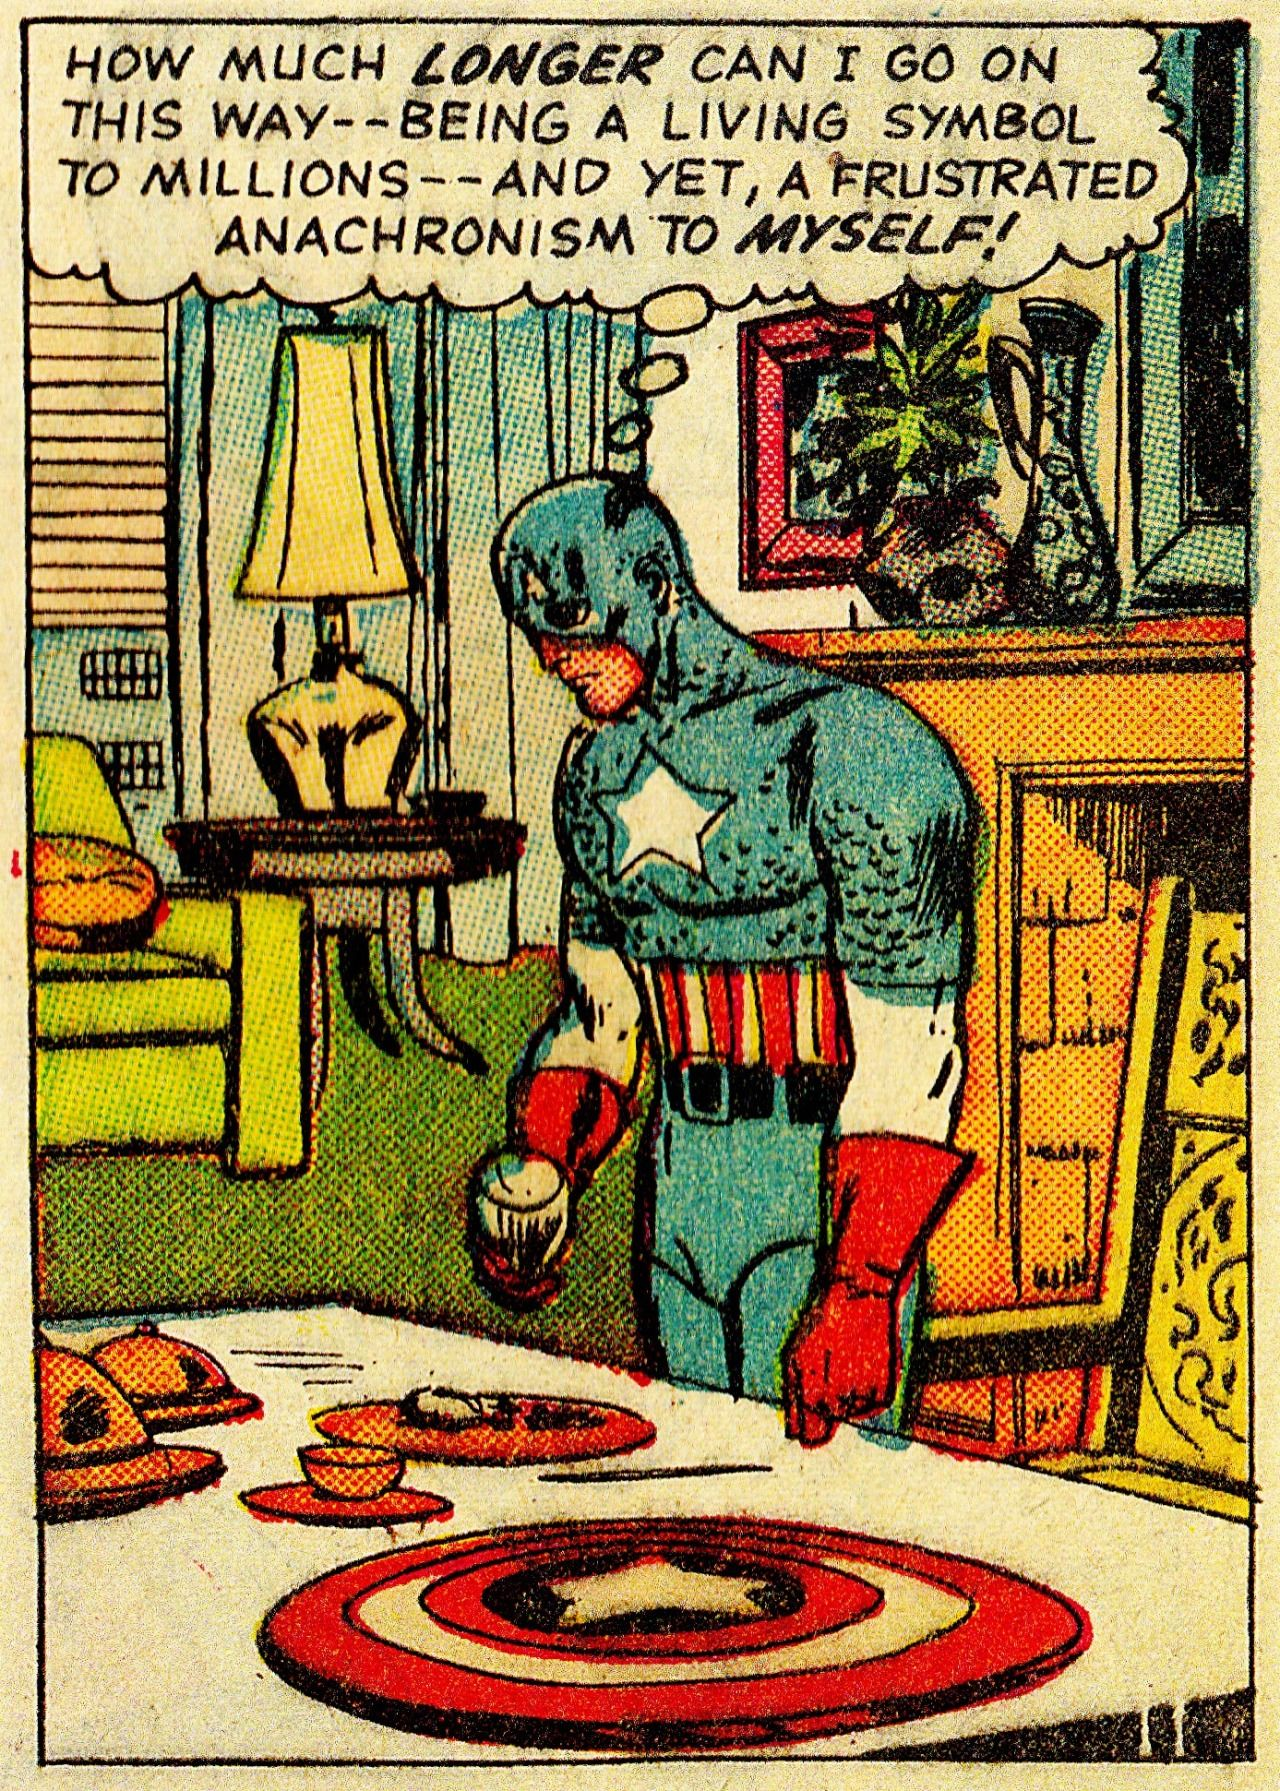 THE AVENGERS #18 (July 1965)Art by Don Heck & Dick Ayers Words by Stan Lee